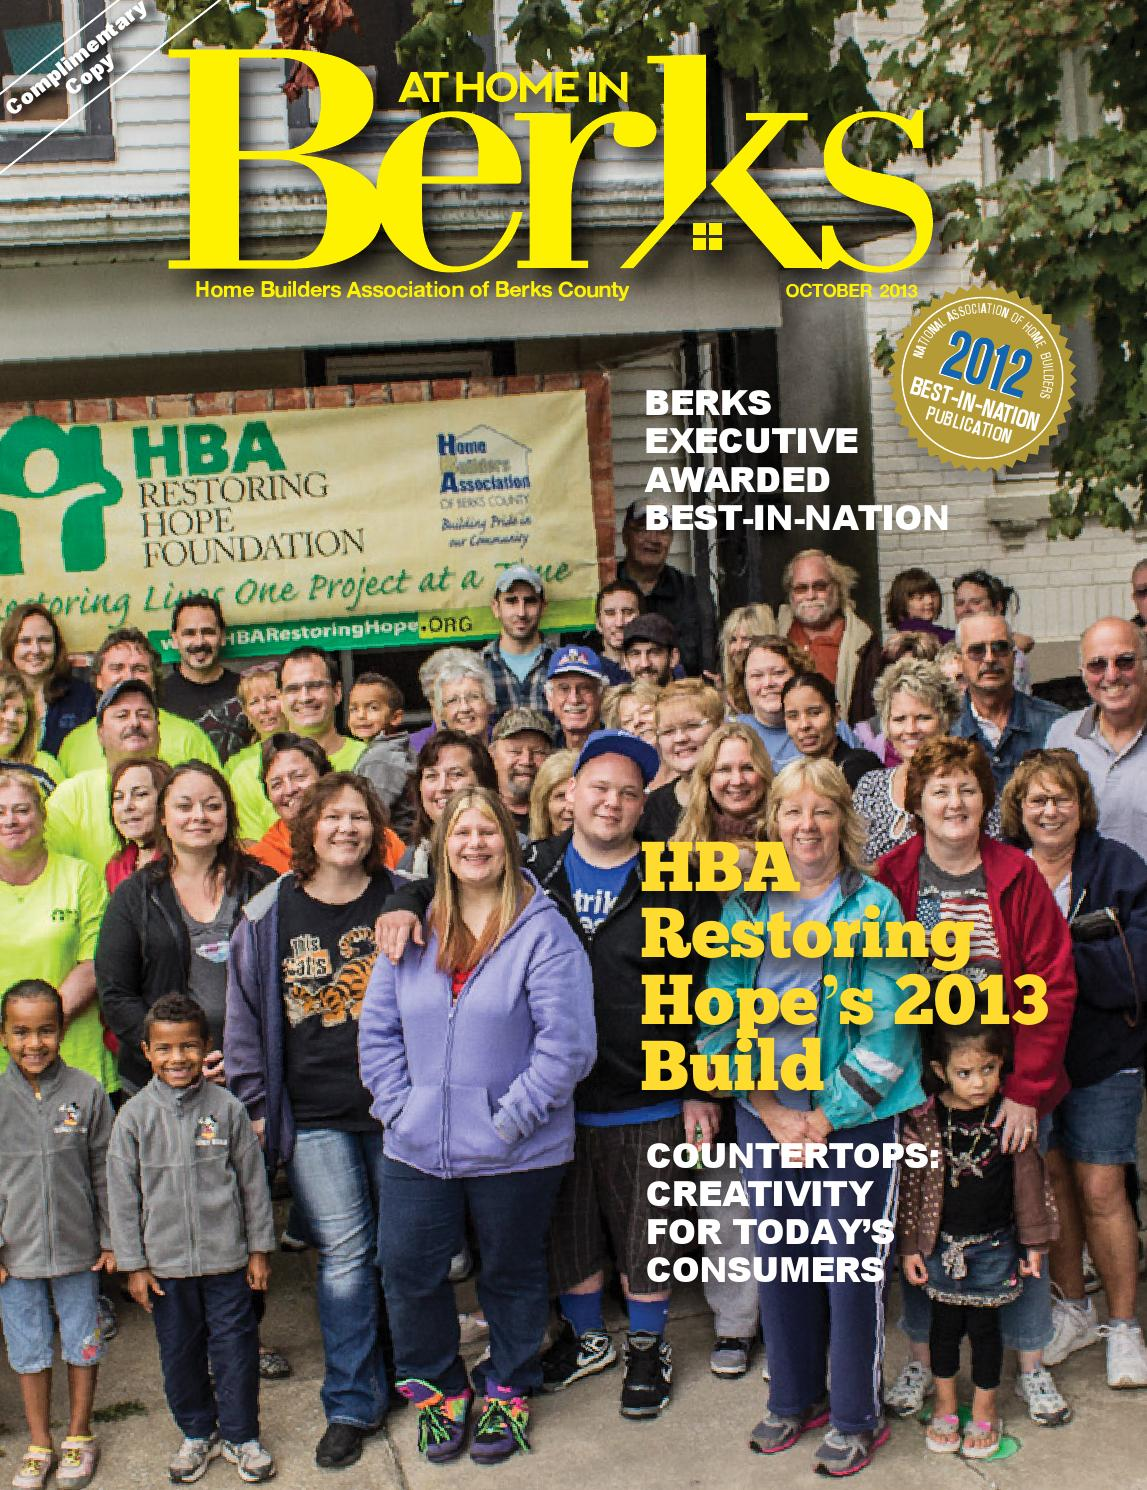 At Home In Berks October 2013 By Hoffmann Publishing Group